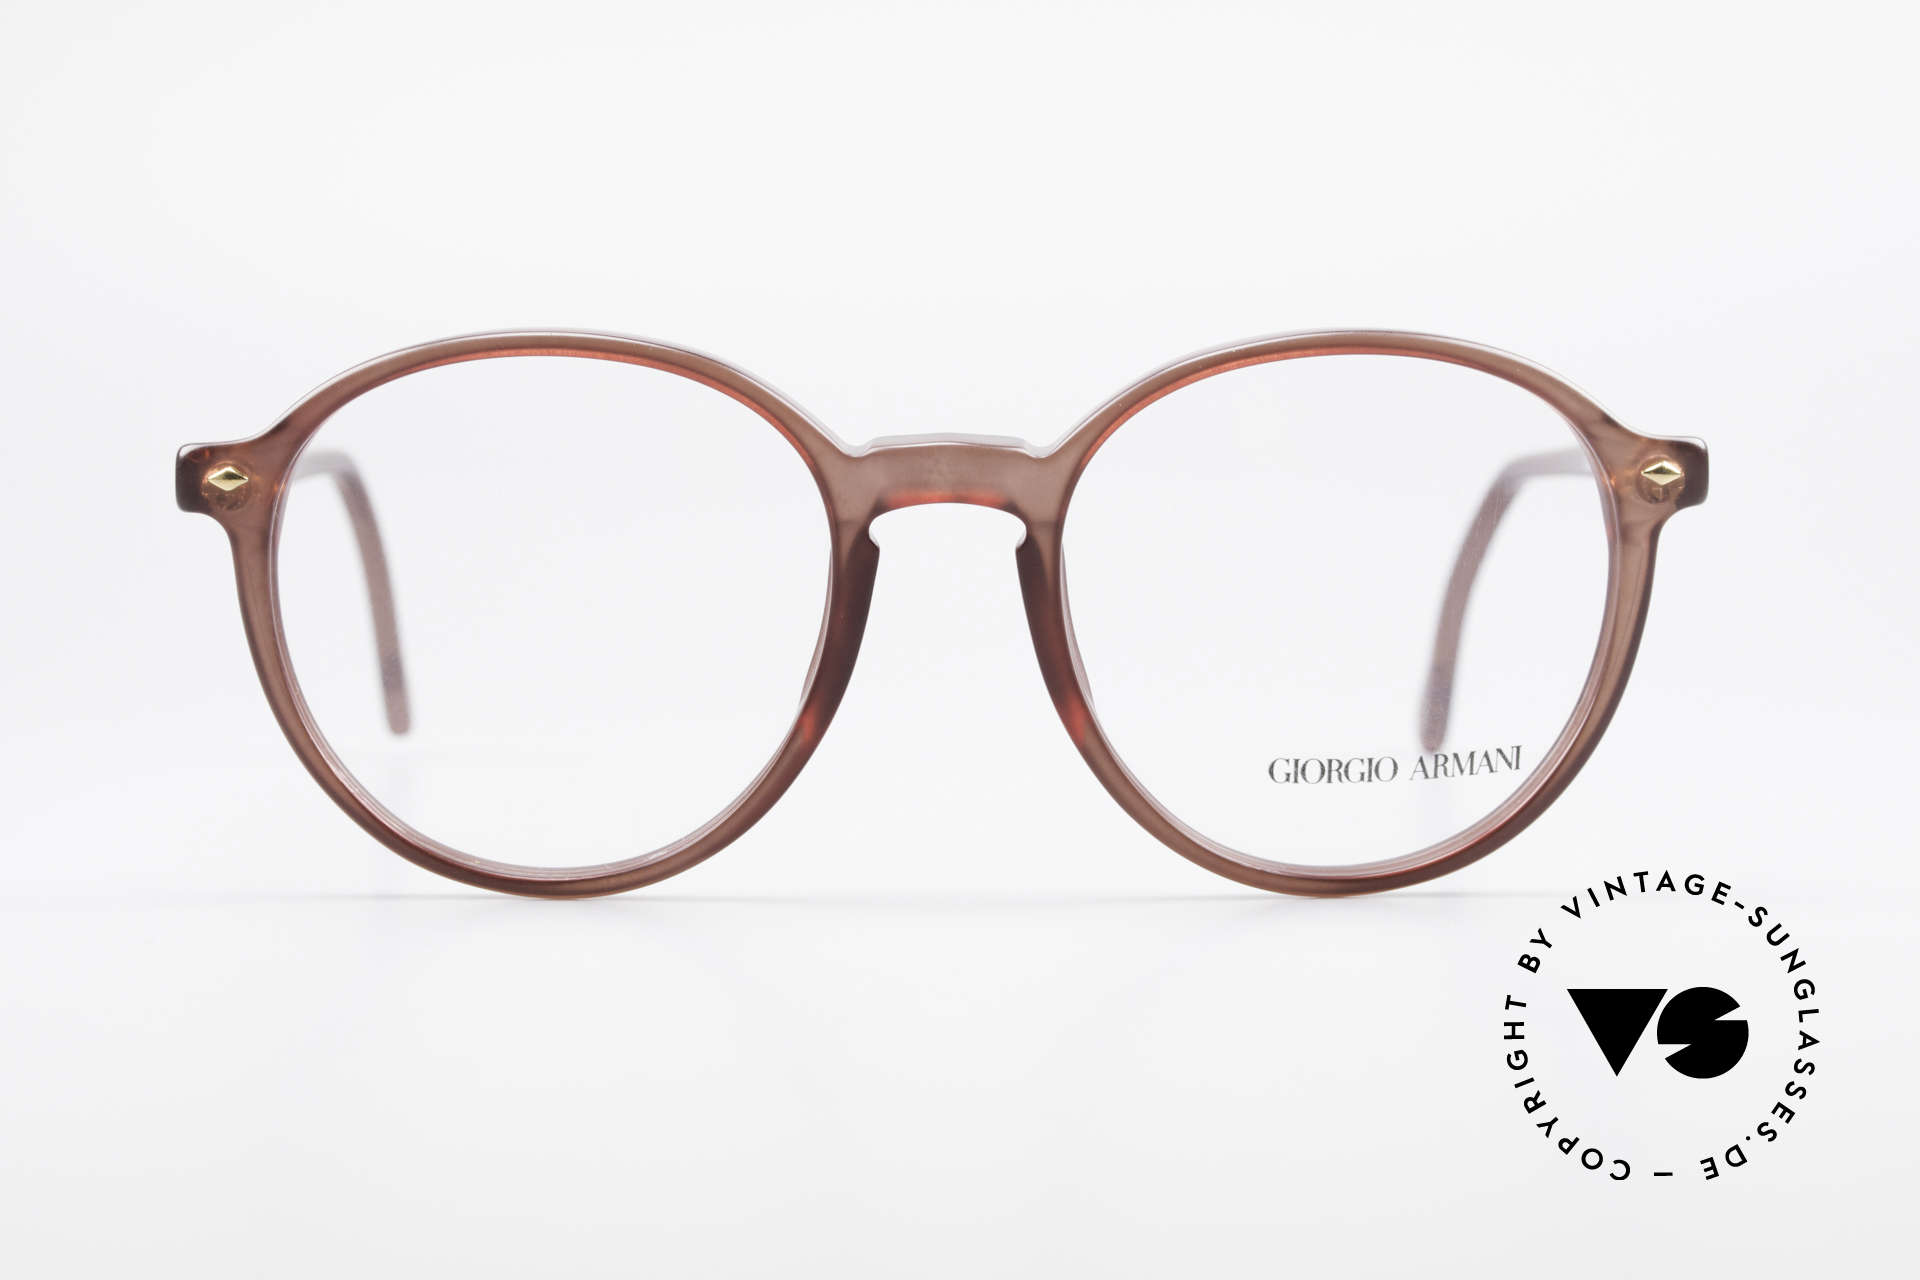 Giorgio Armani 325 Vintage Panto 90's Eyeglasses, PANTO frame design with classic translucent brown, Made for Men